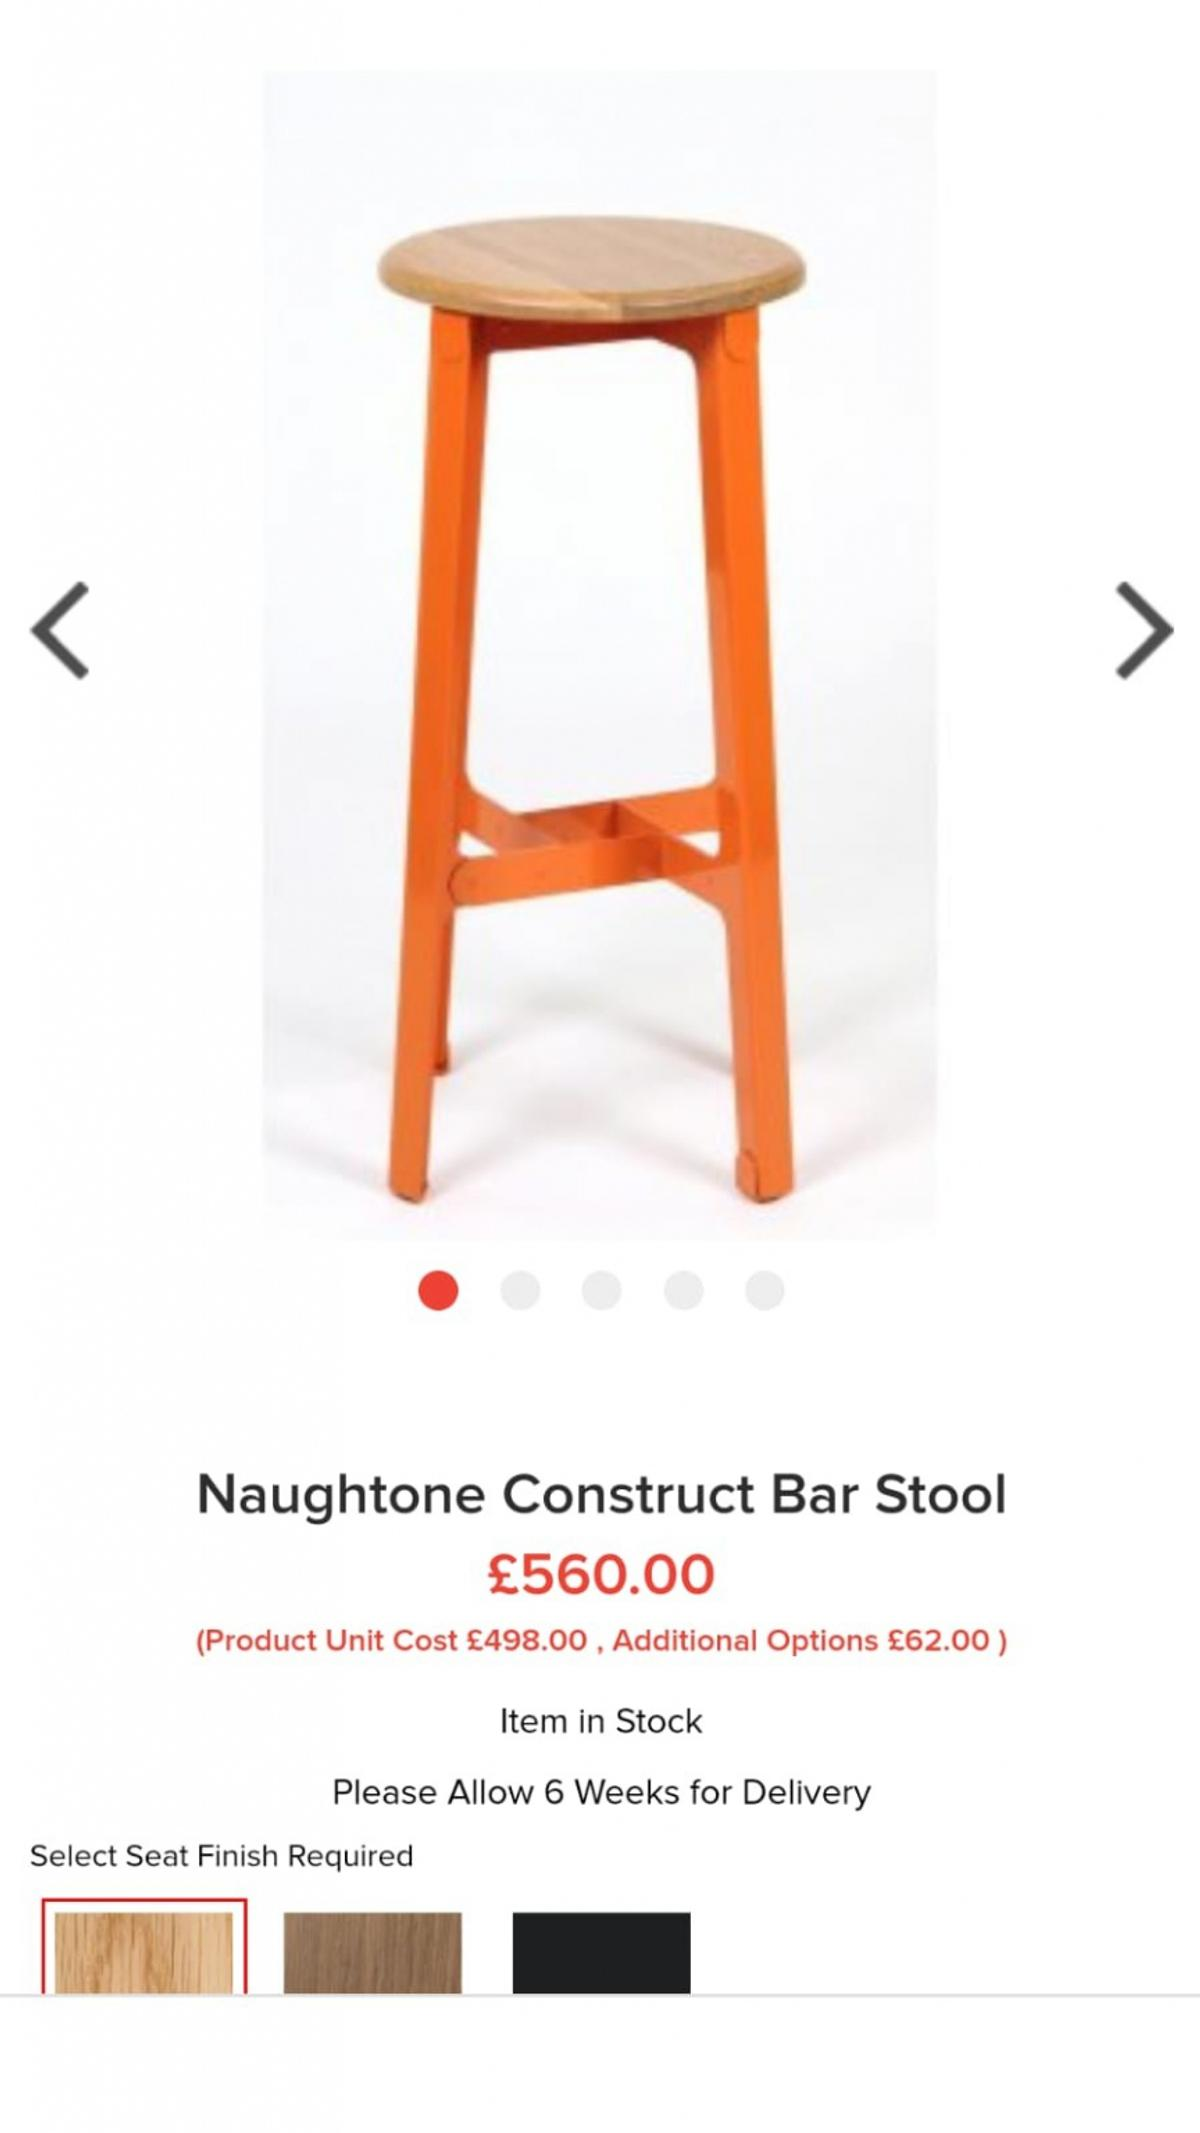 Stupendous 2 X Naughtone Construct Bar Stools Rrp 560 Caraccident5 Cool Chair Designs And Ideas Caraccident5Info